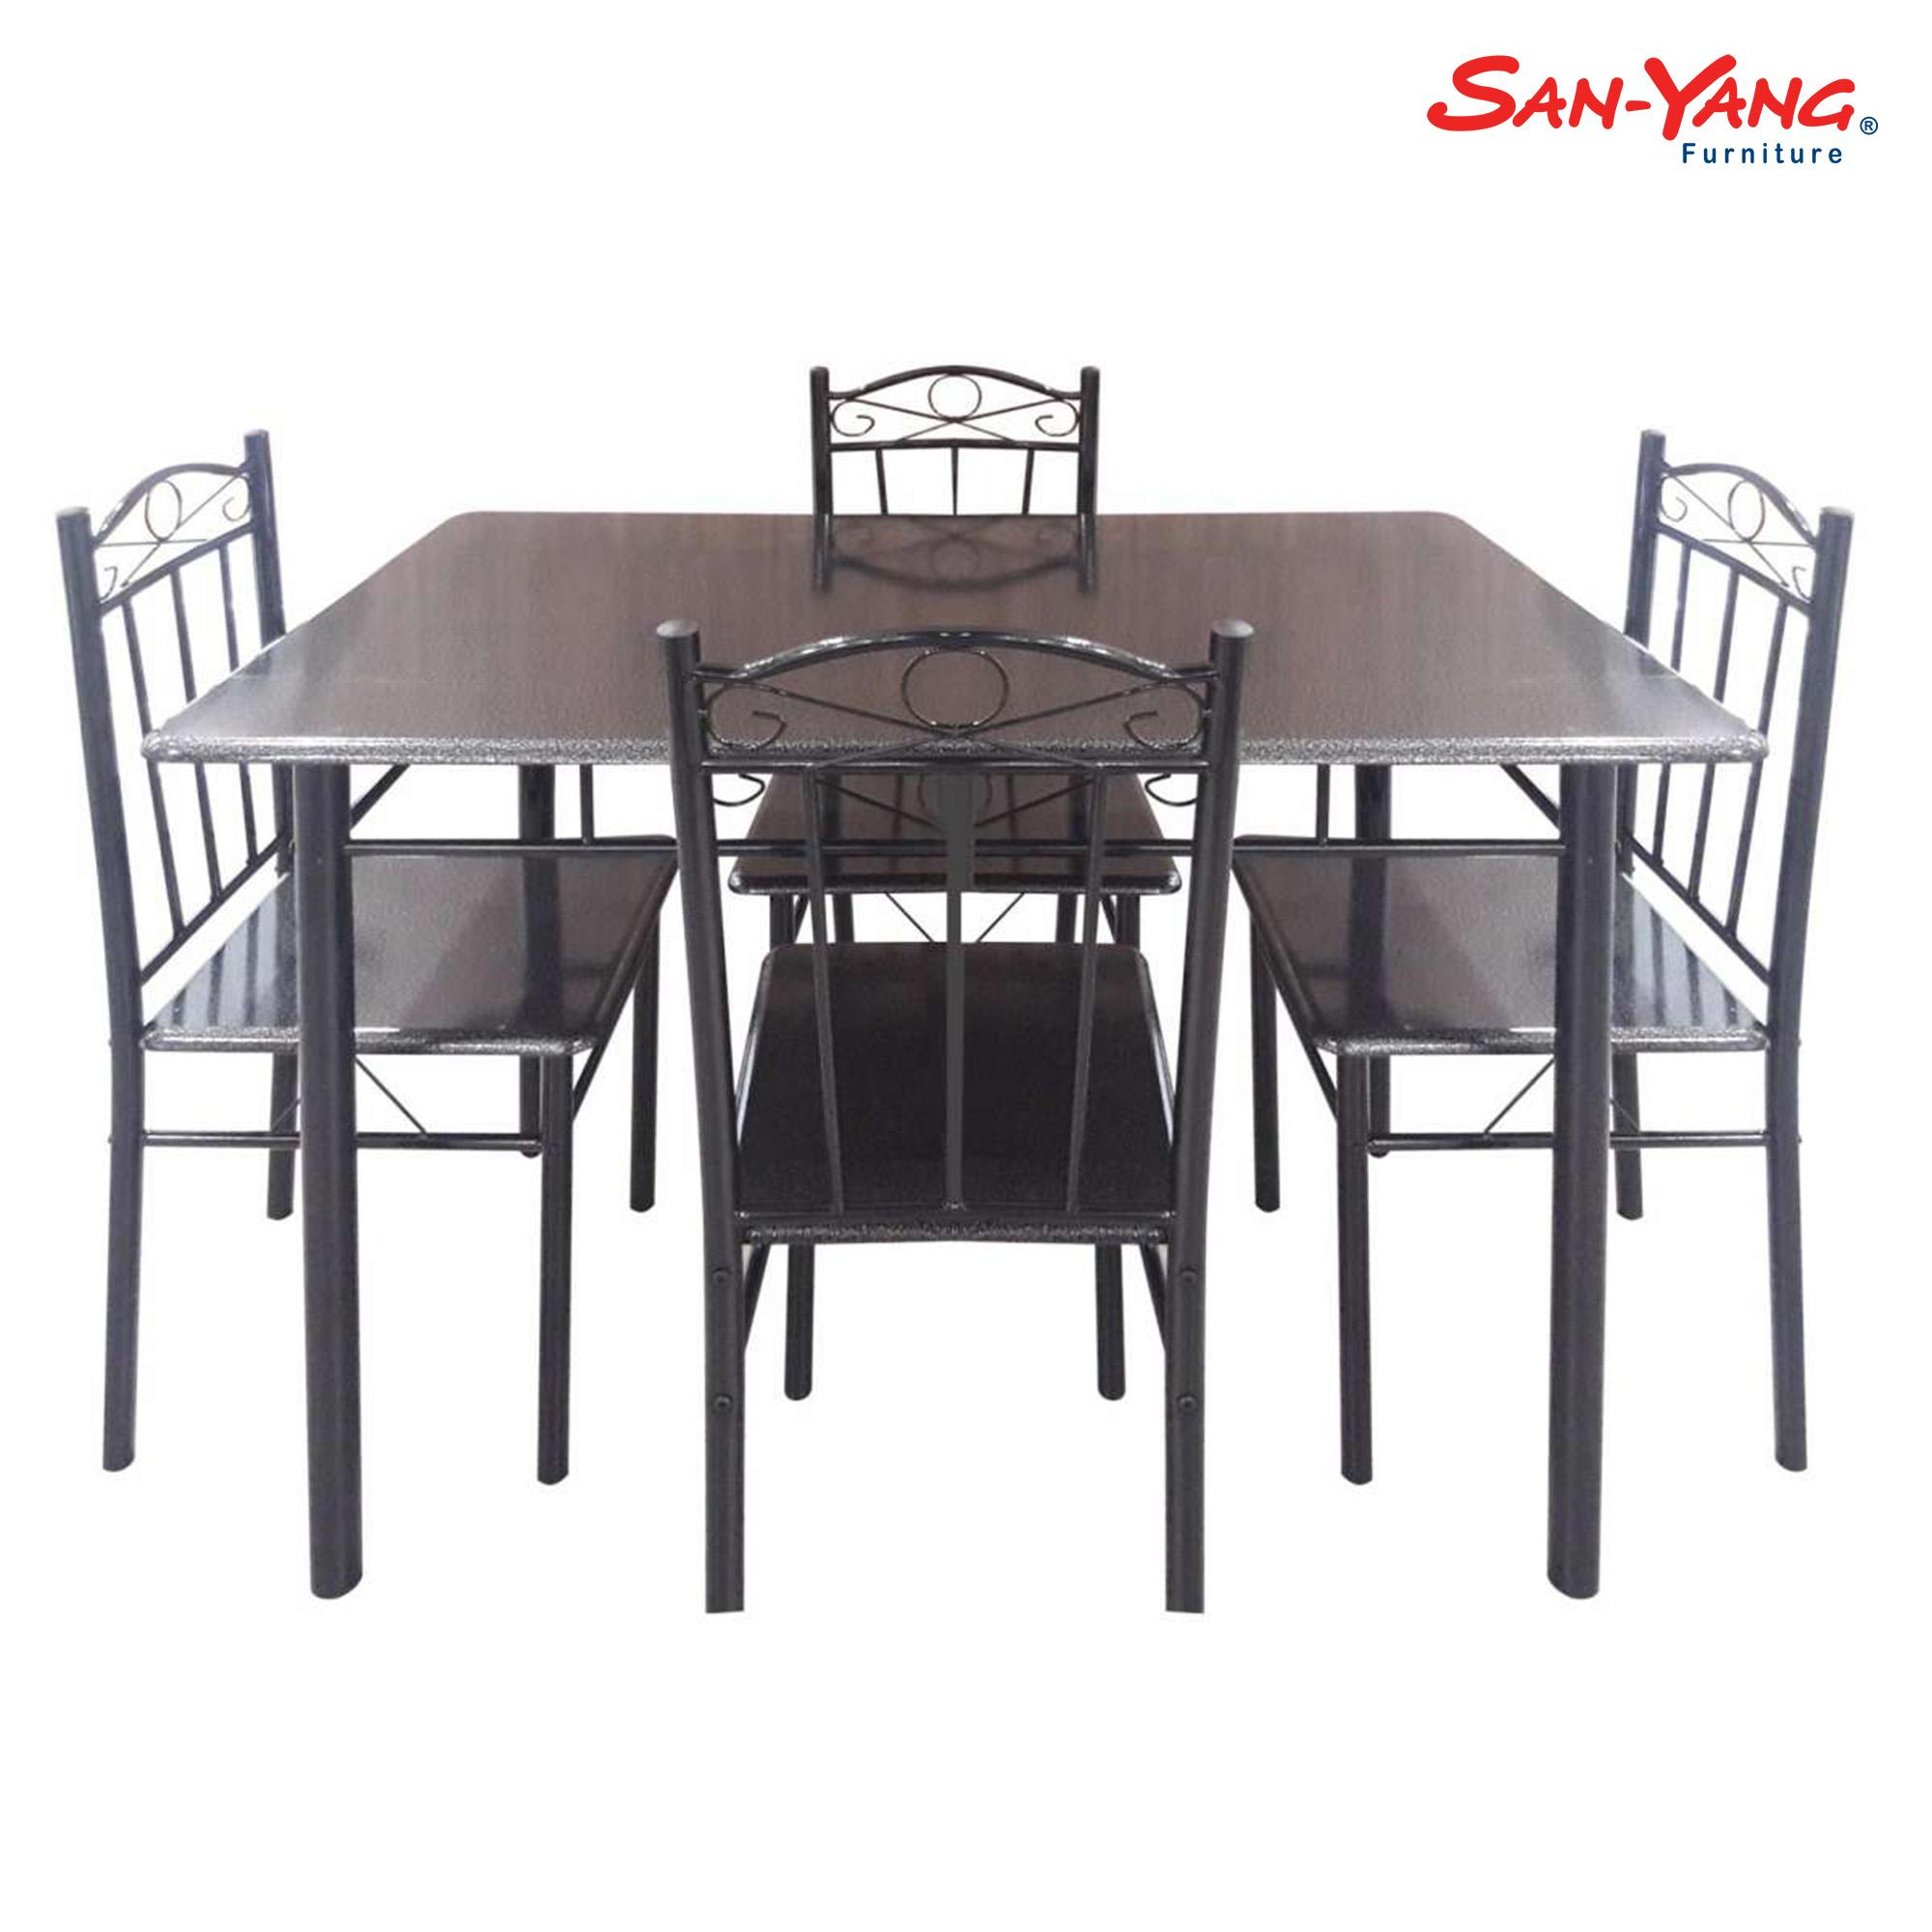 Best Price On Furniture: Buy Latest Kitchen & Dining Furniture At Best Price Online